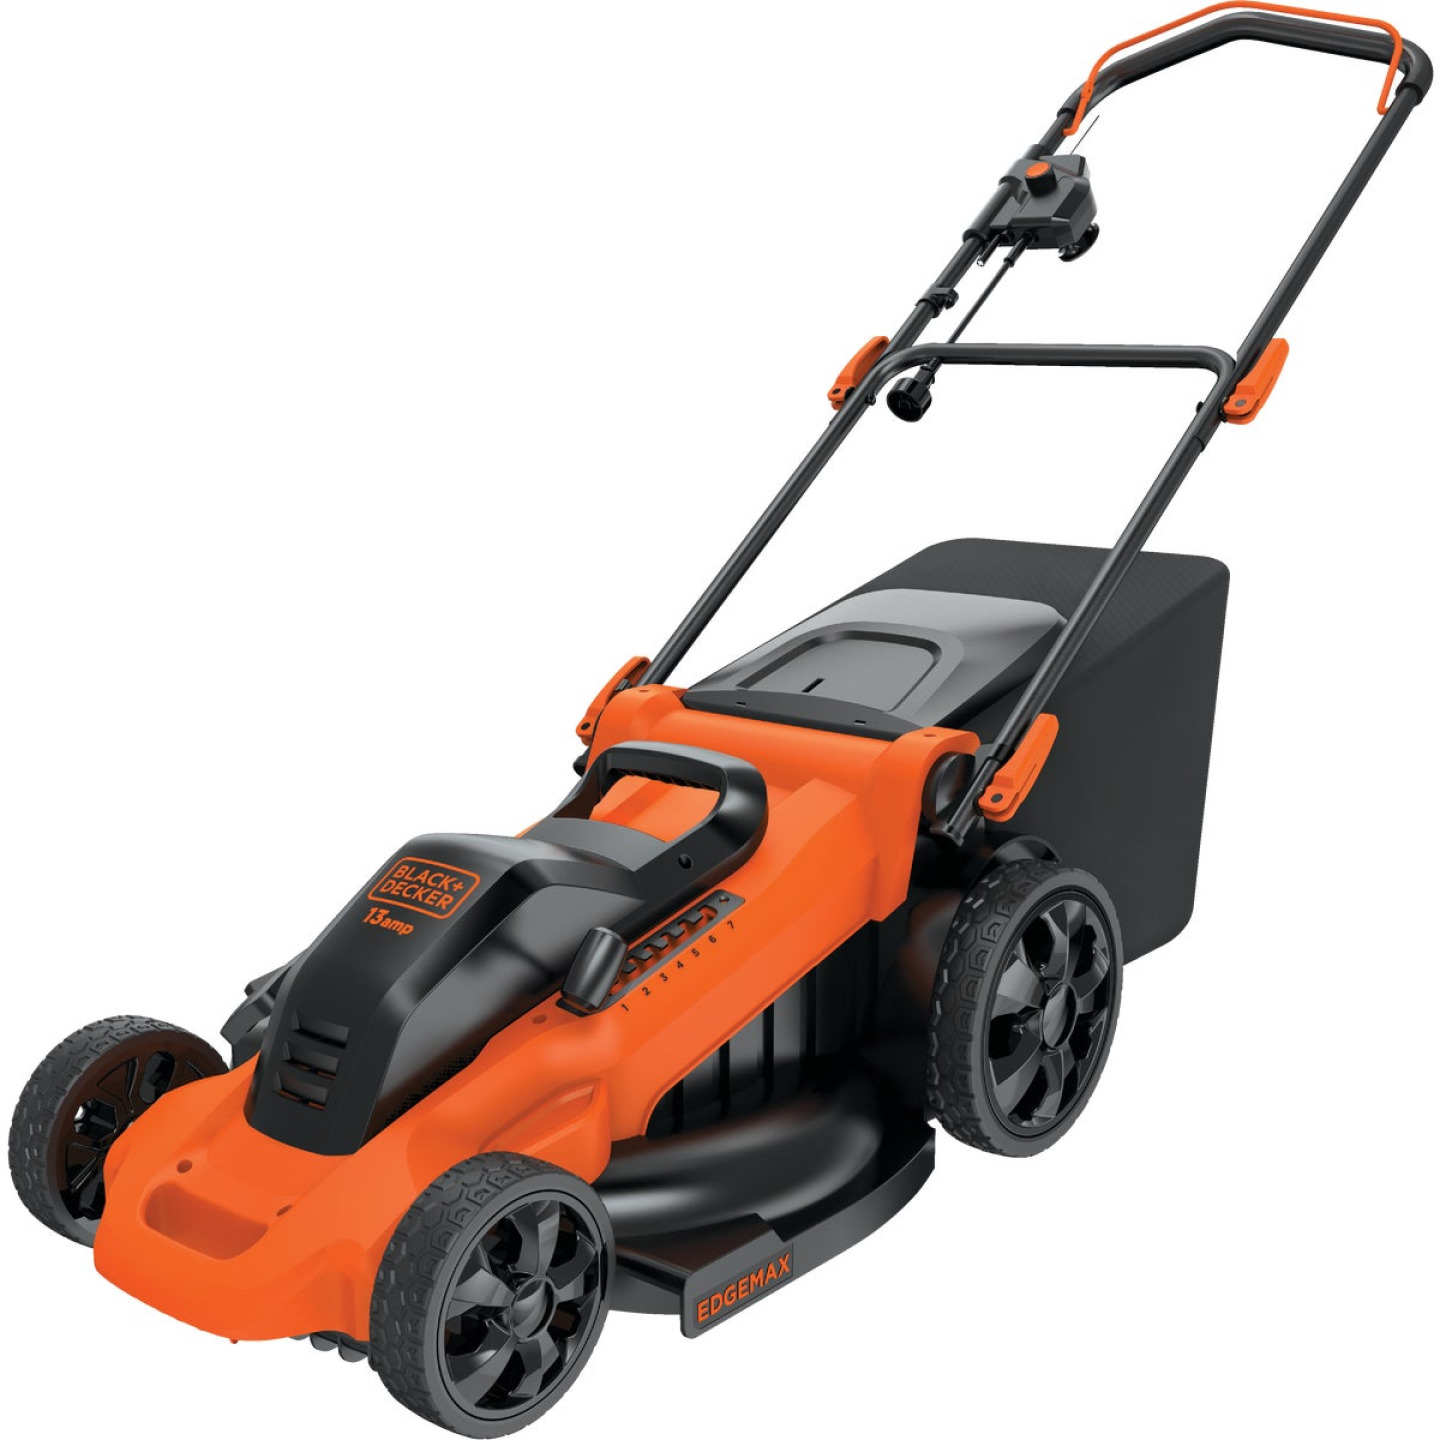 Black & Decker 20 In. 13A Push Electric Lawn Mower Image 1